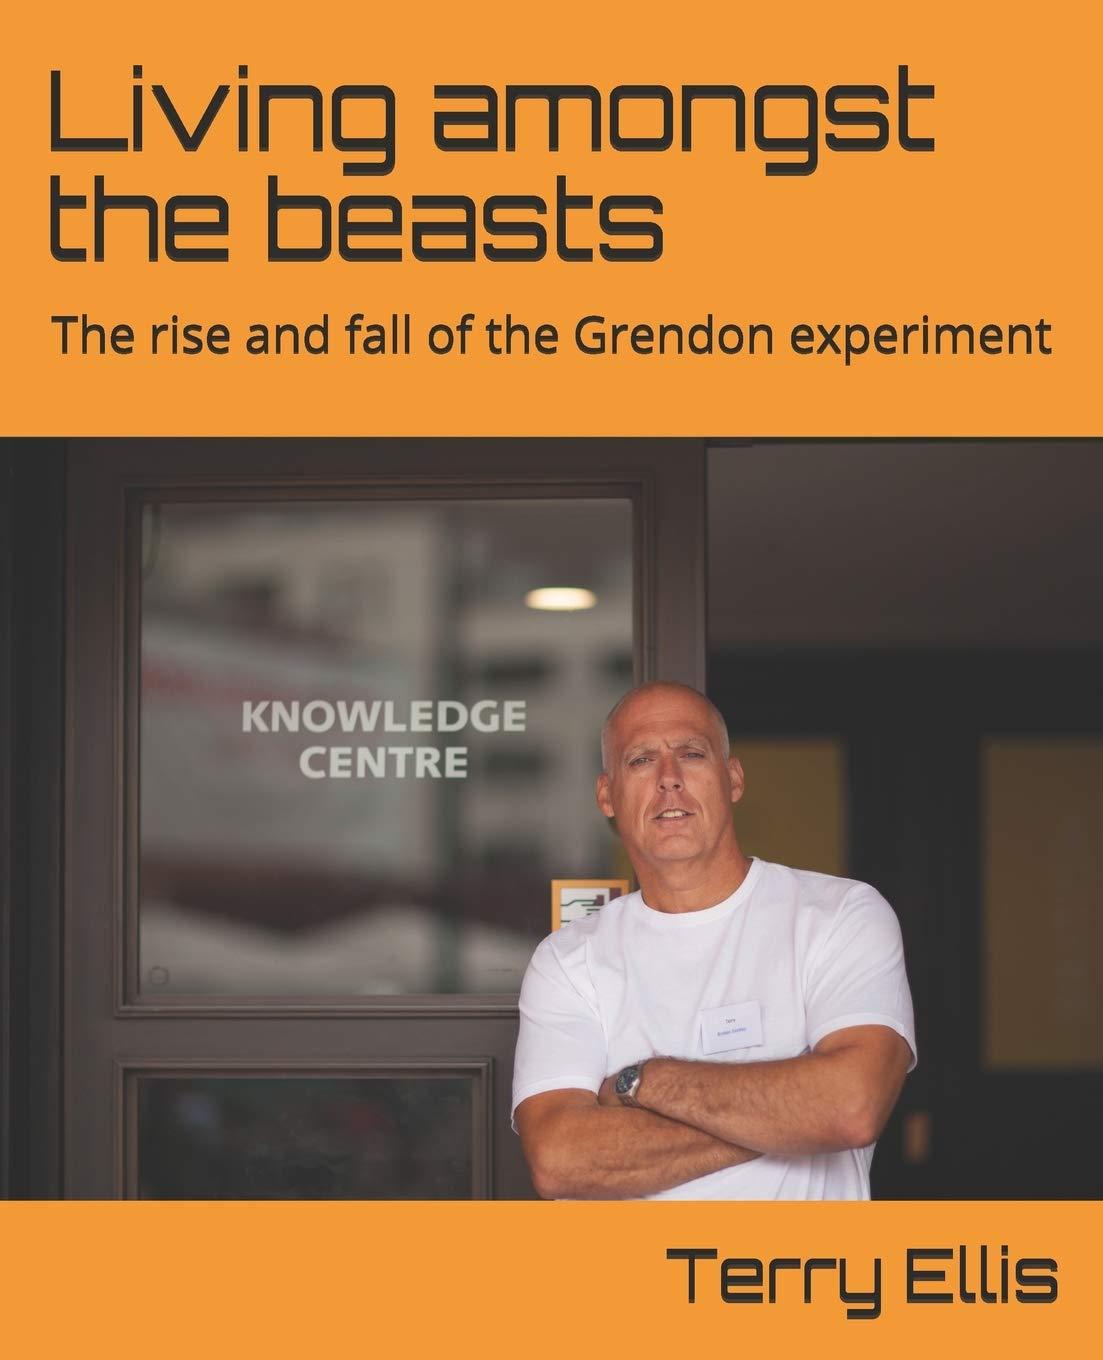 Living amongst the beasts: The rise and fall of the Grendon experiment:  Amazon.co.uk: Ellis, Mr Terry, Alston, Mr Christopher, Rahman, Mr M:  9798646815300: Books